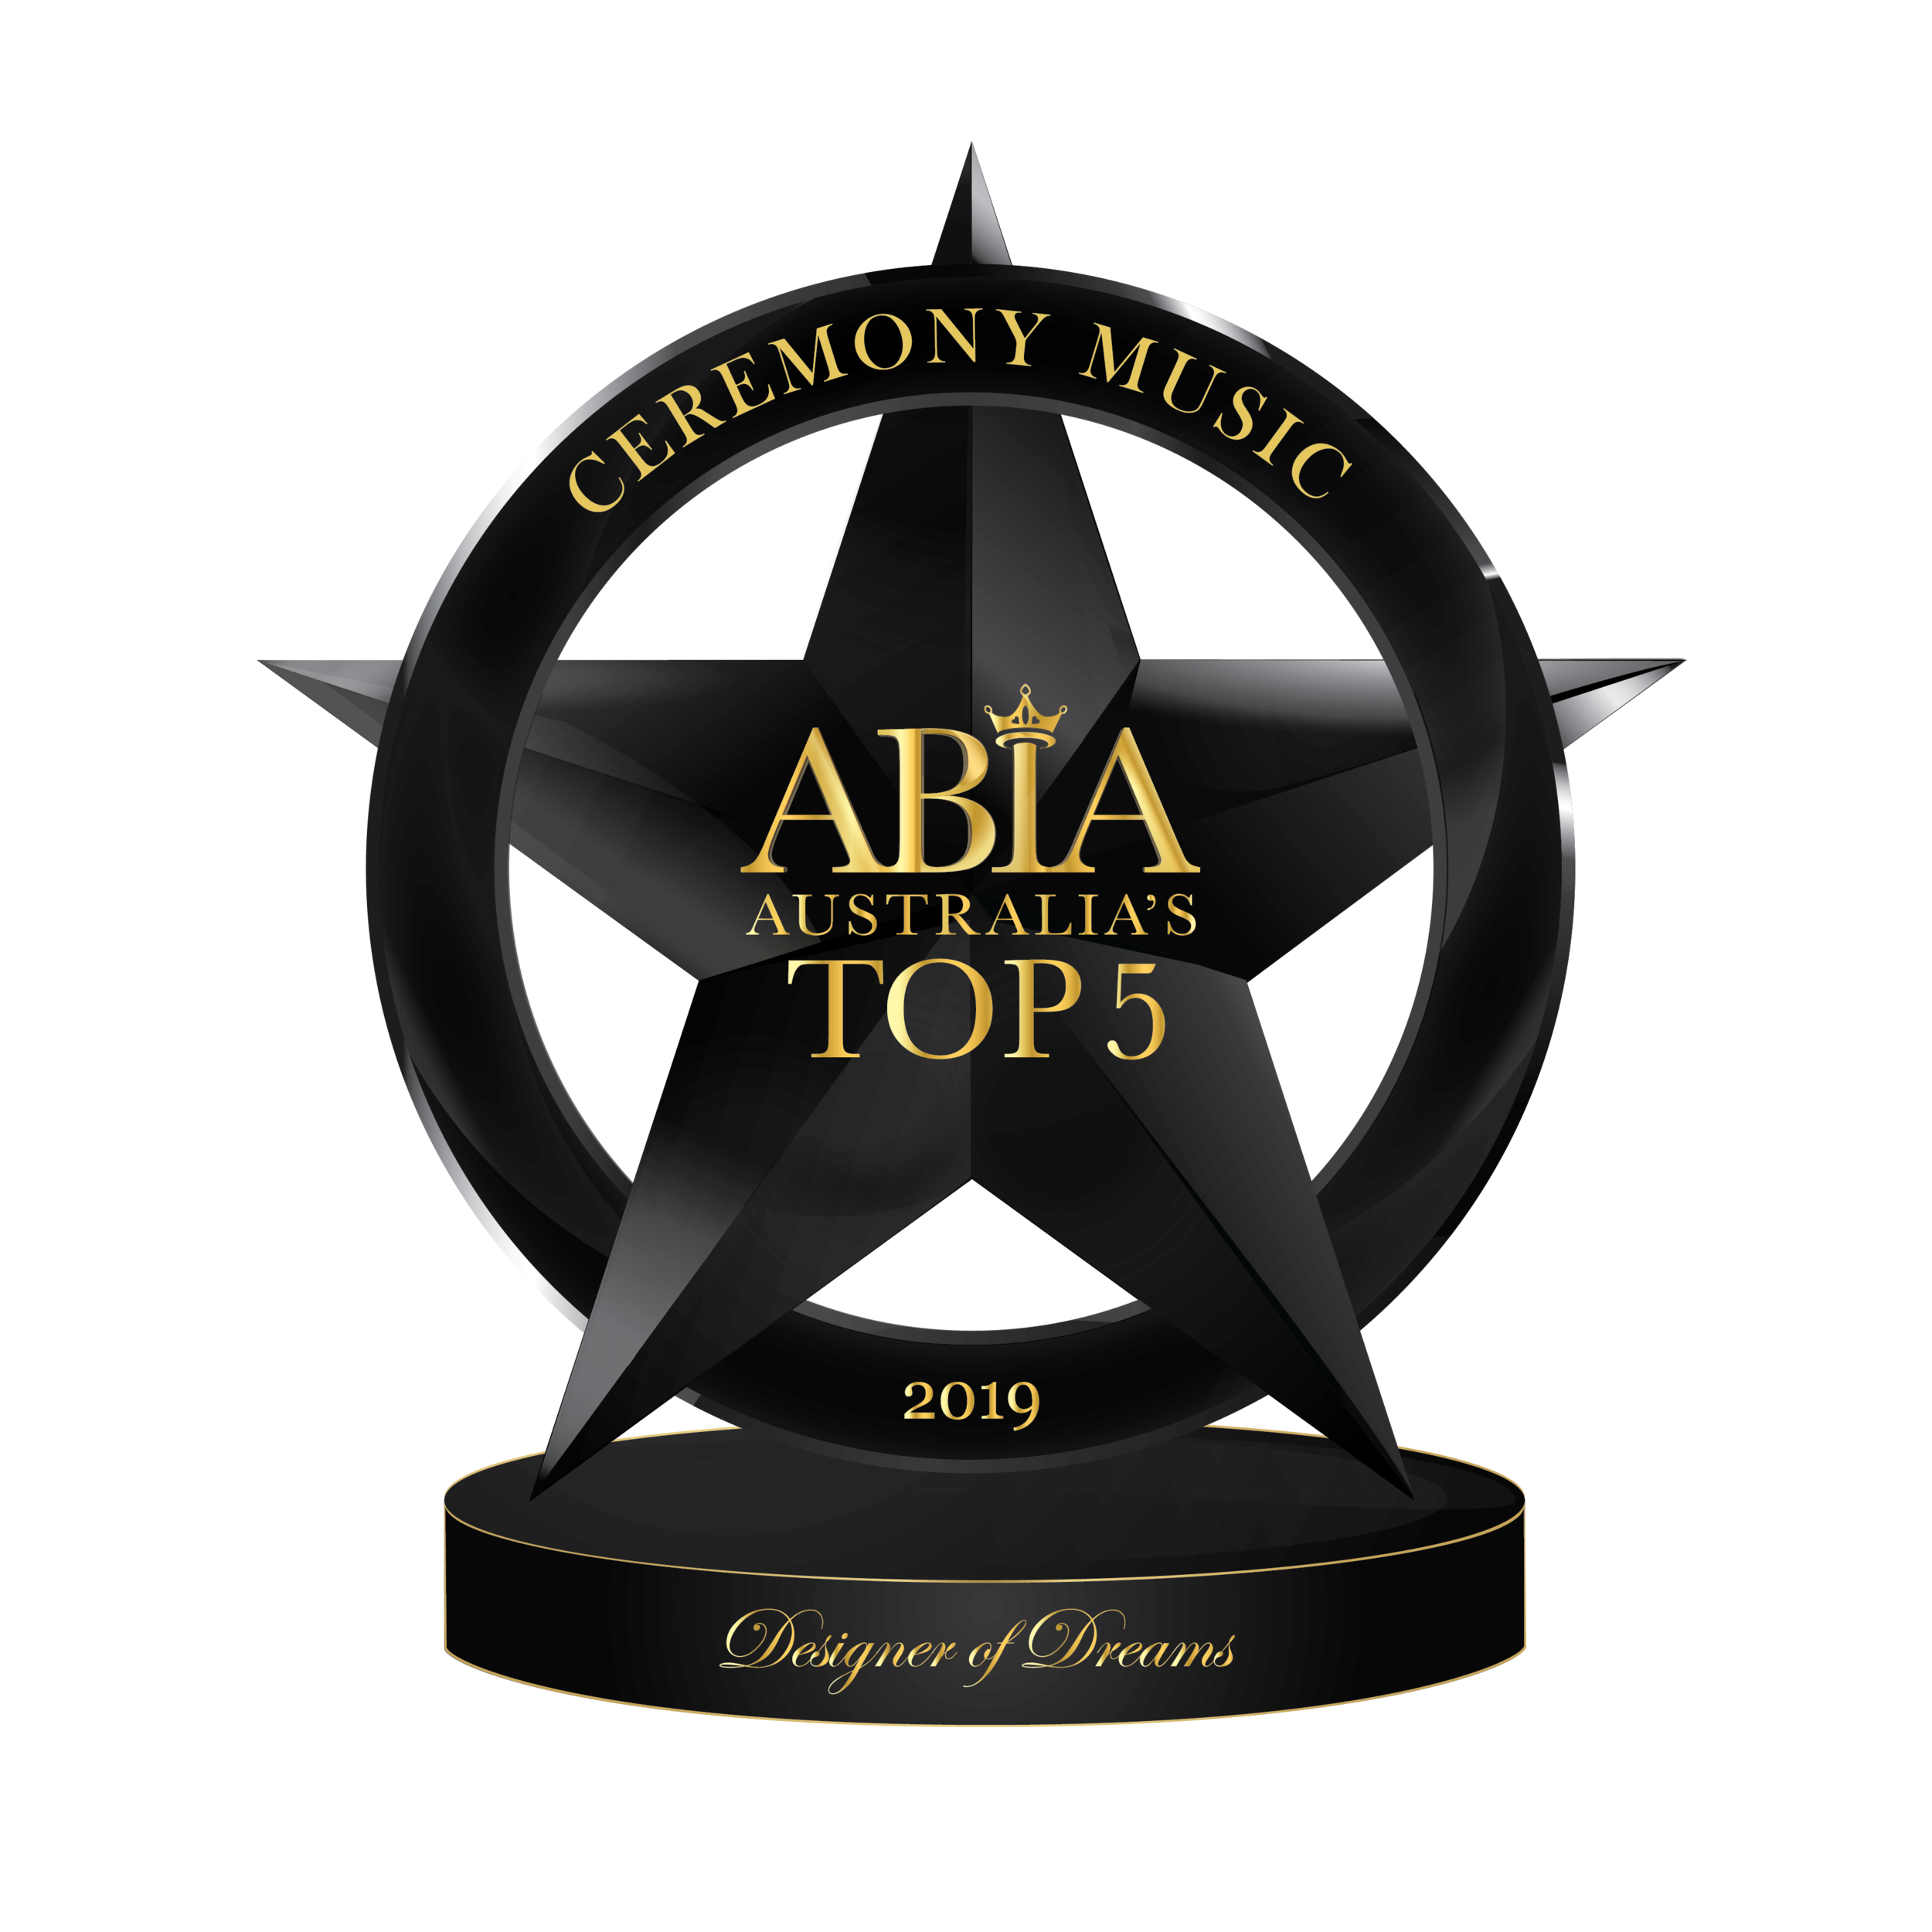 2019 ABIA National Logo-Ceremony-Music_Top5.png